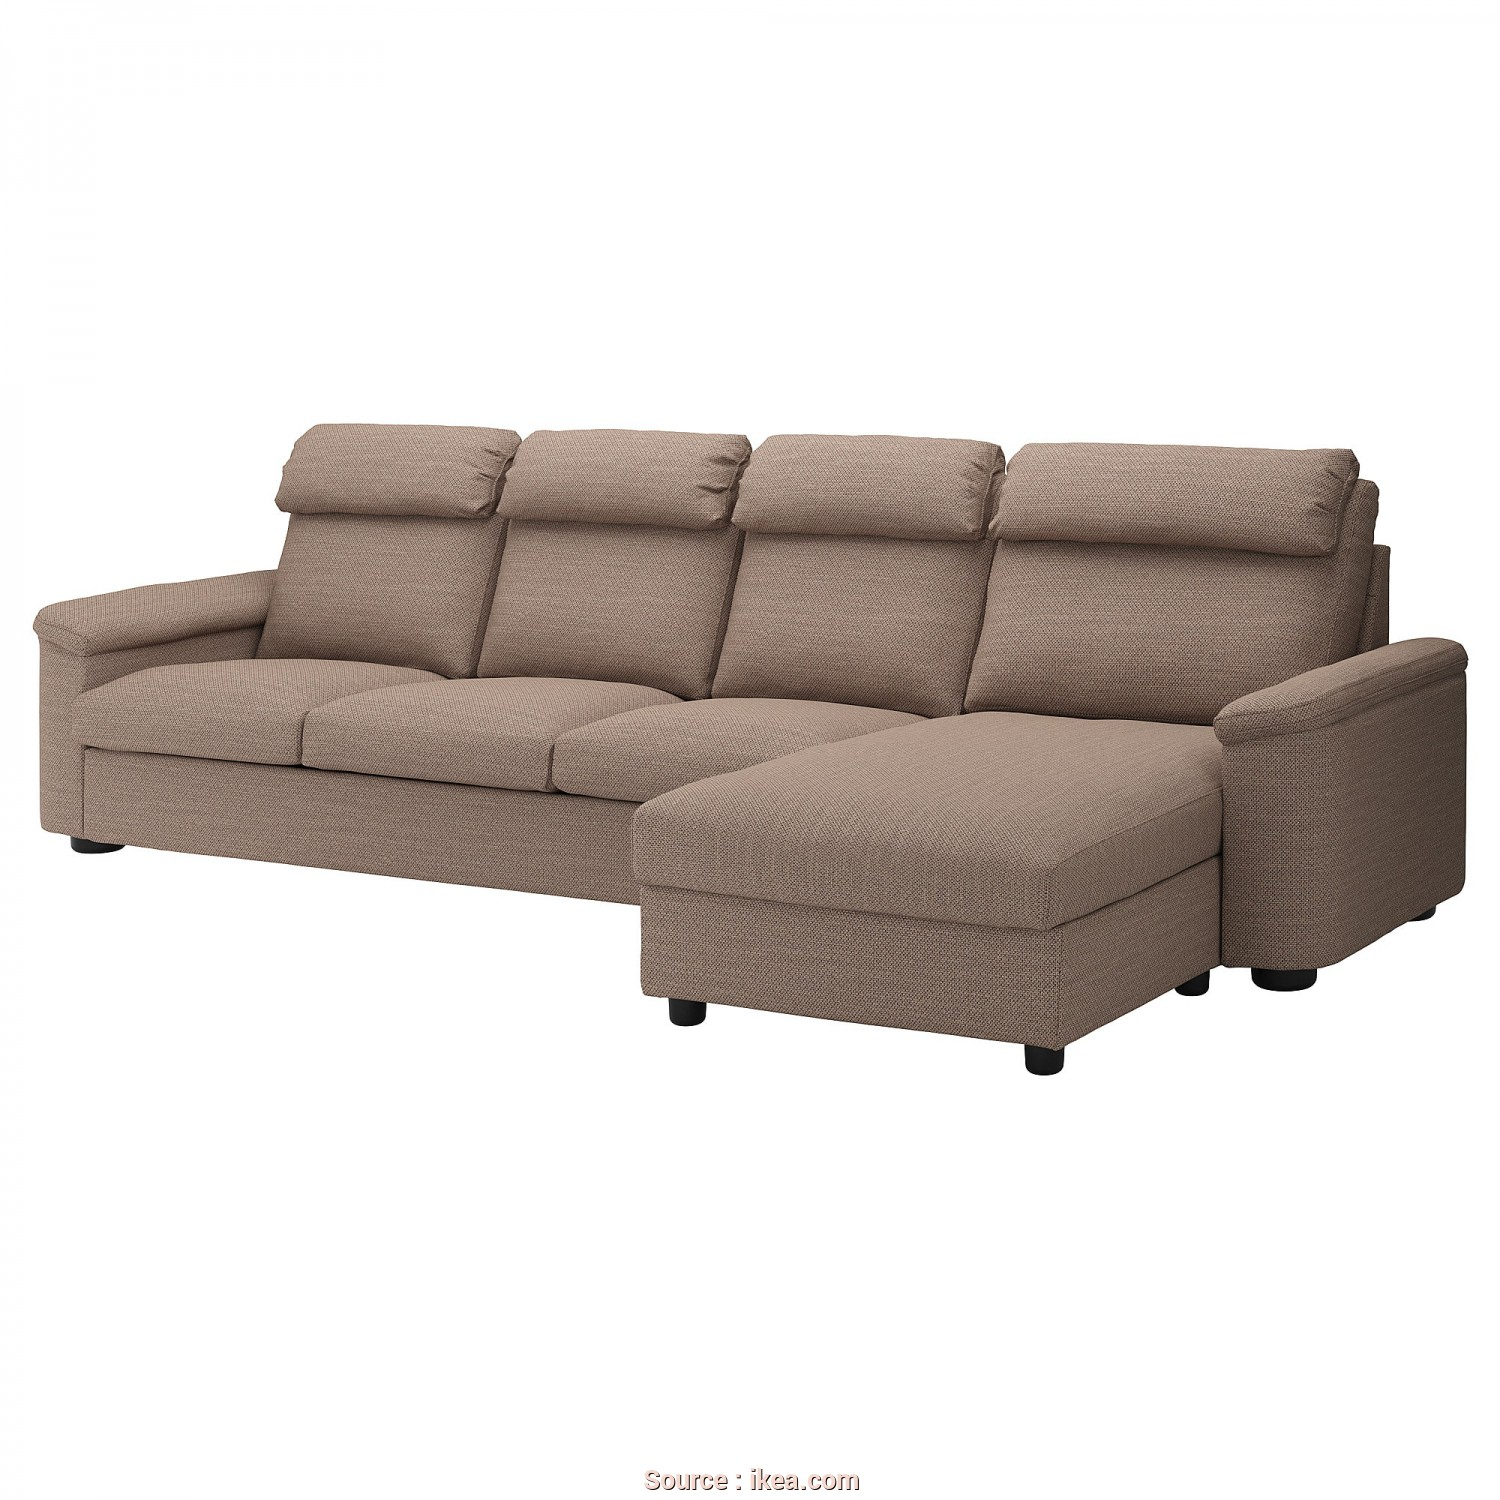 Divano Klippan Ikea 4 Posti, Eccezionale IKEA LIDHULT 4-Seat Sofa, Cover Is Easy To Keep Clean Since It Is